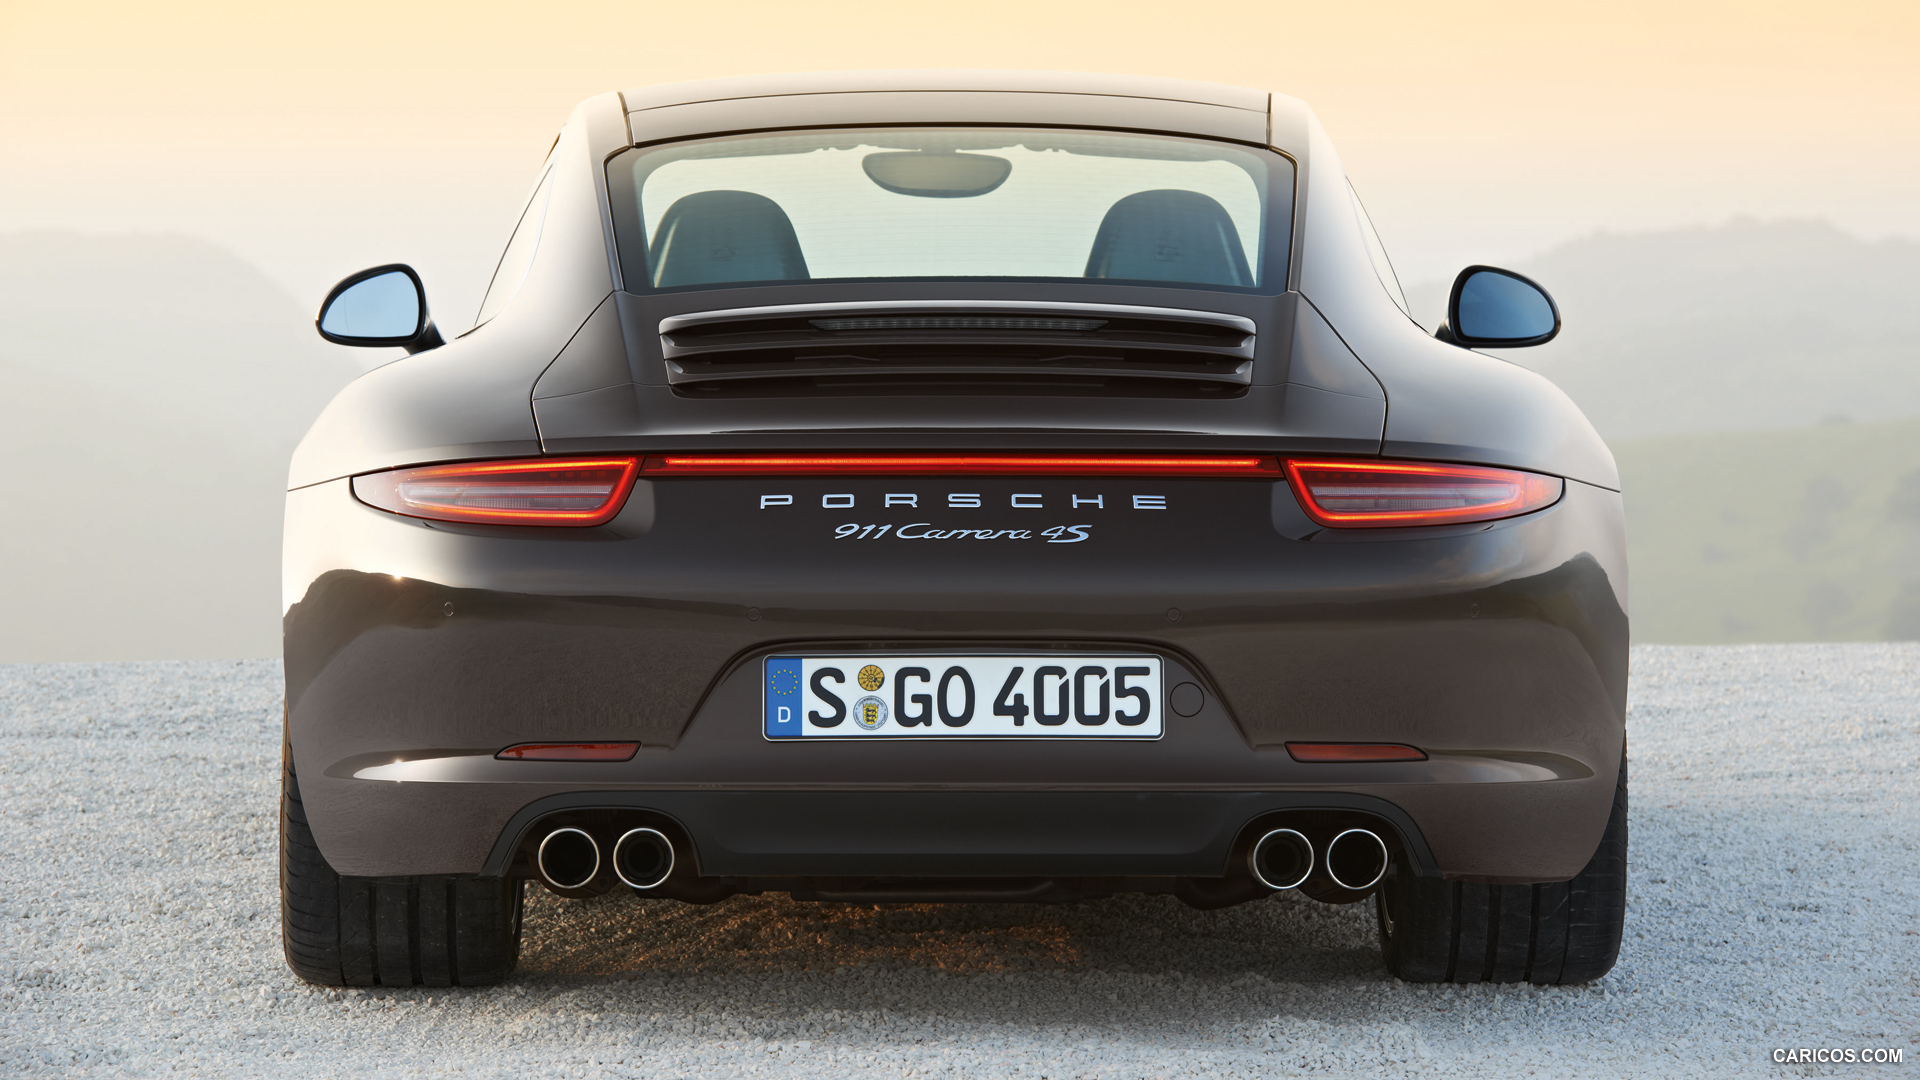 Porsche carrera 4s rear